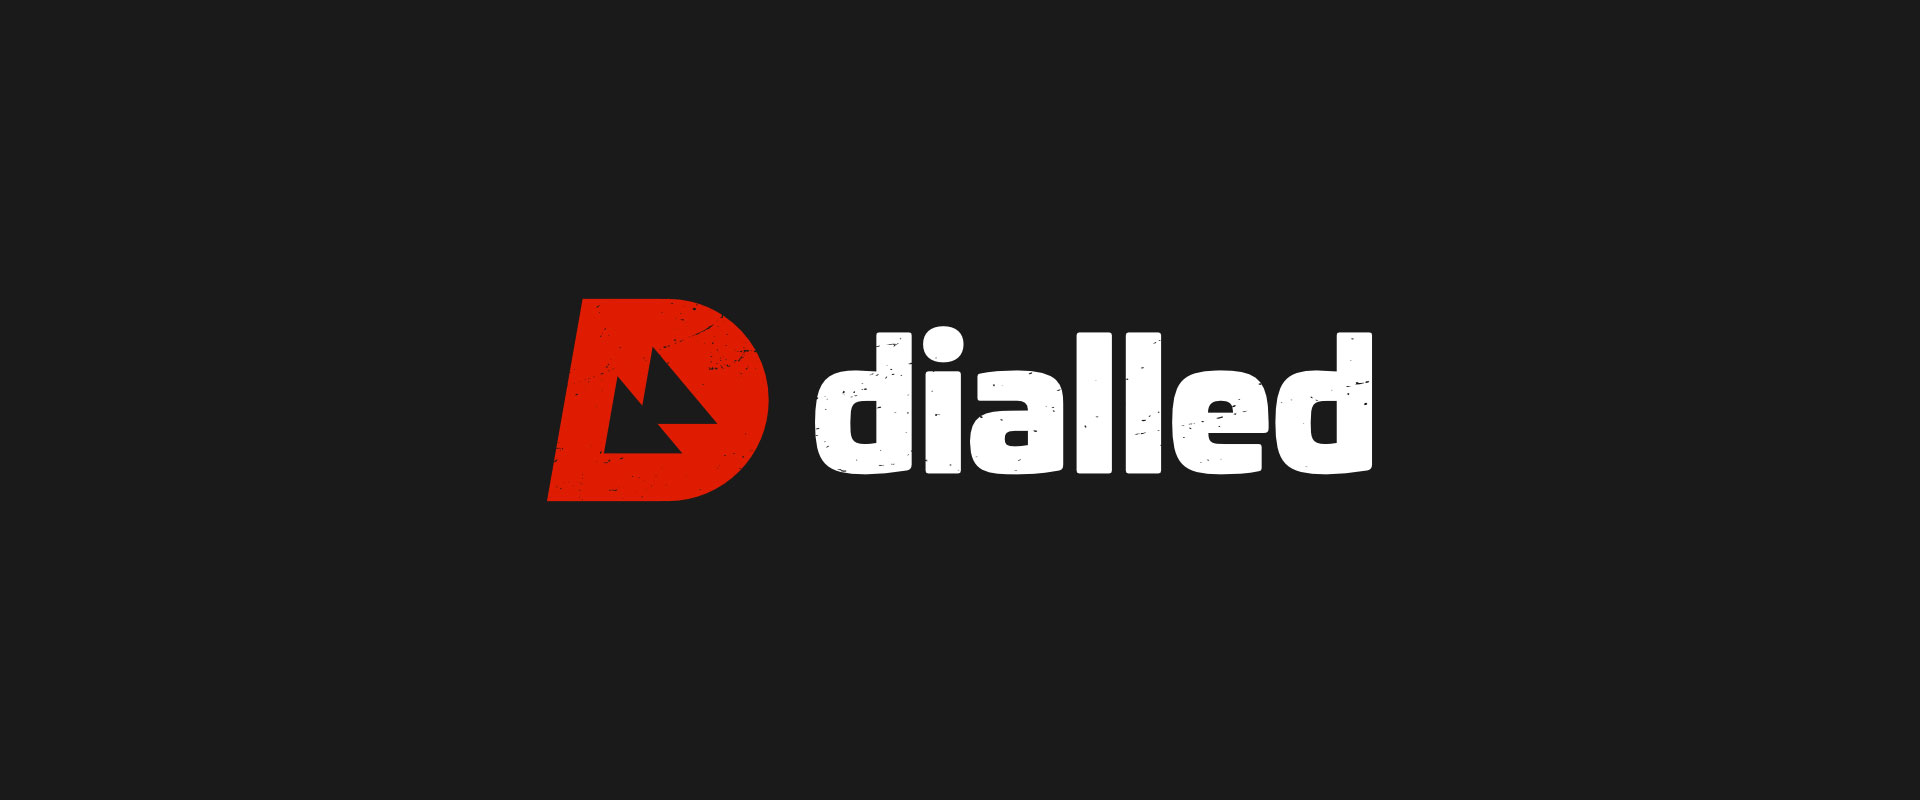 dialled - logo design